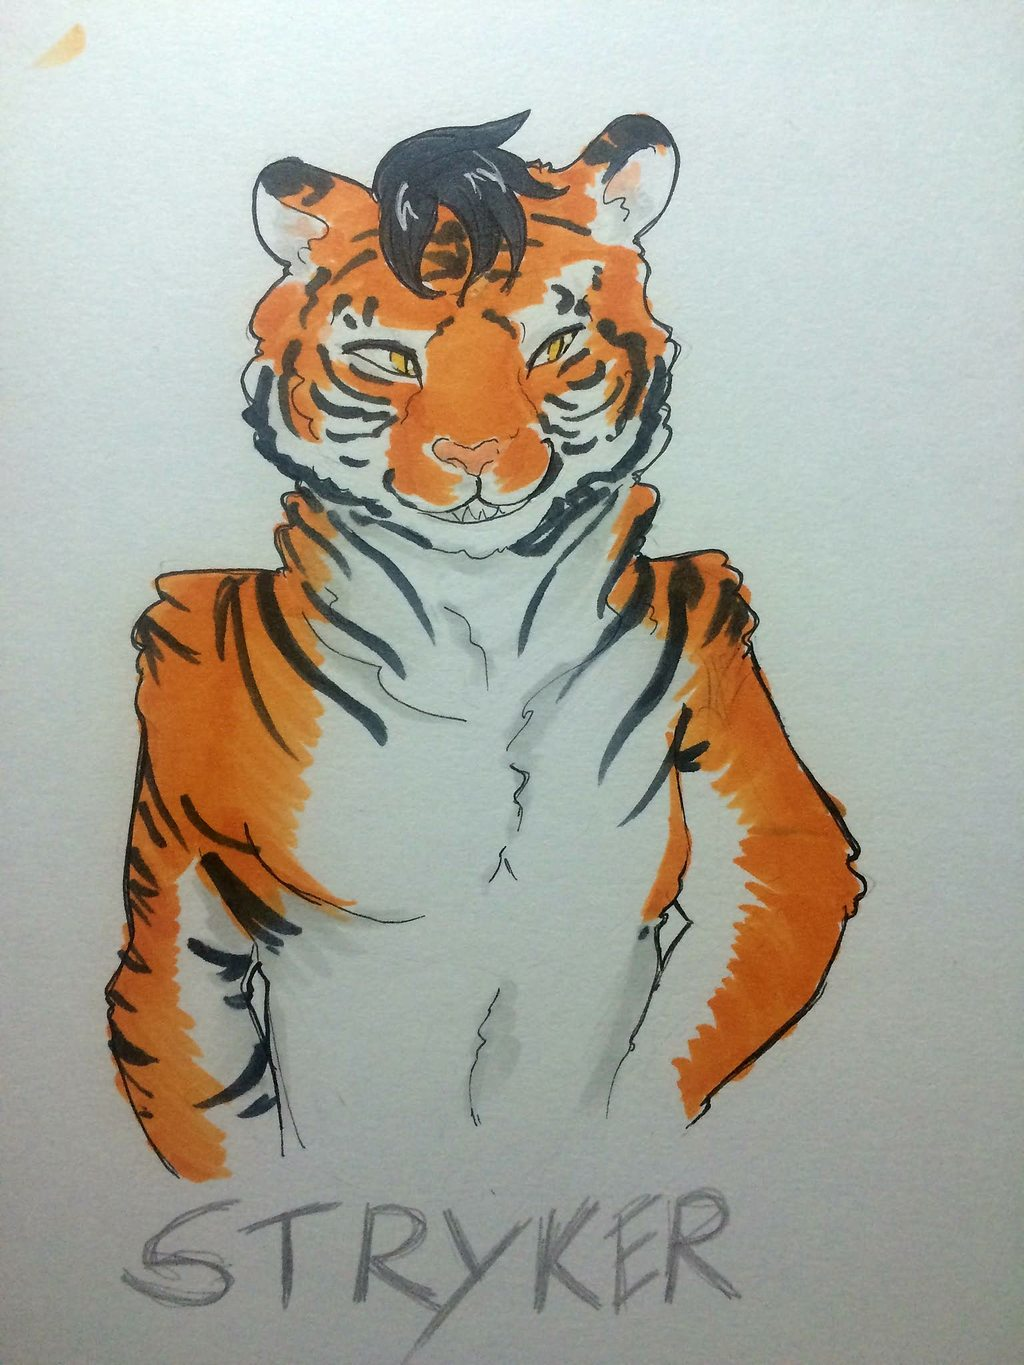 Most recent character: Strykertigerpaws